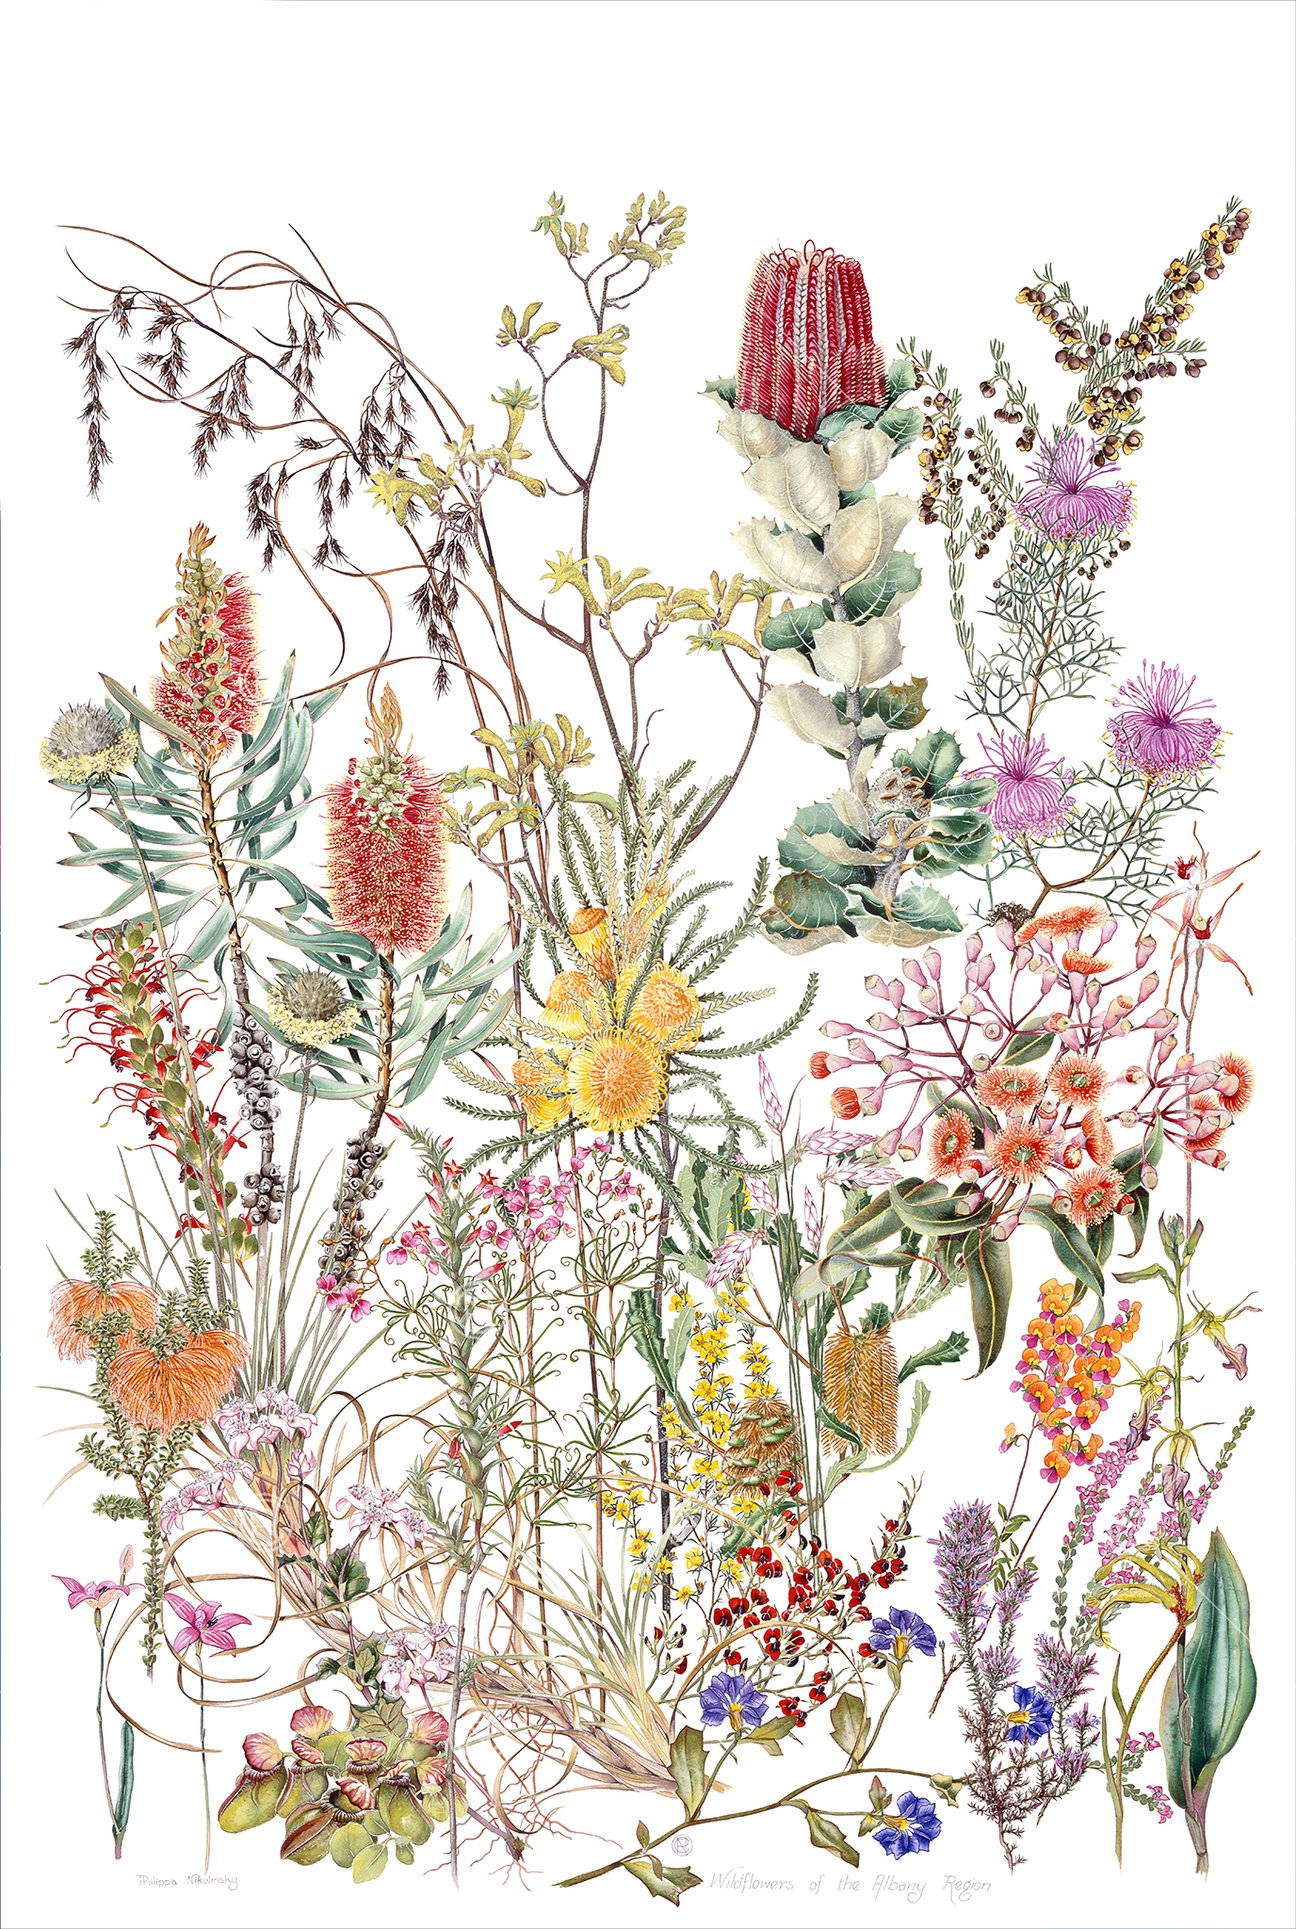 Wildflowers of the Albany Region, watercolour, pencil, gouache on hot-pressed Arches paper, 1990, Philippa Nikulinsky artist